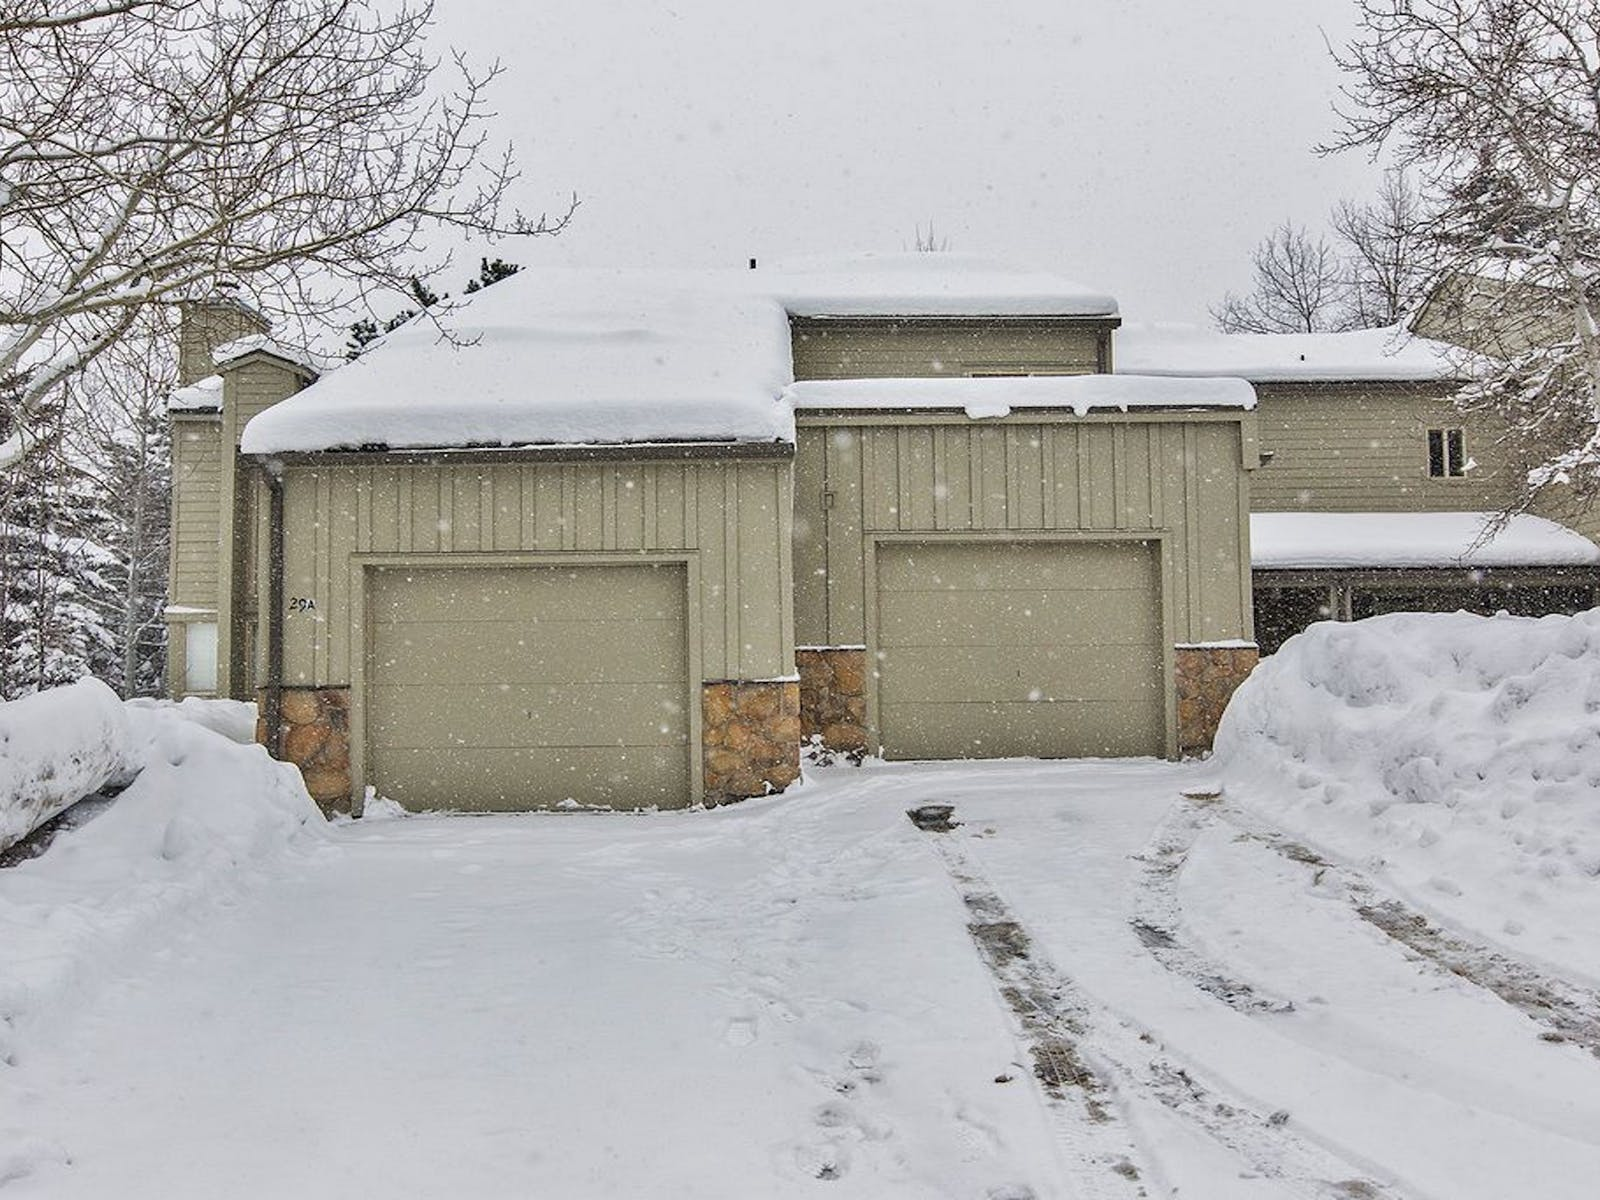 """Canyons Dream"" vacation rental in Park City, UT covered in snow"